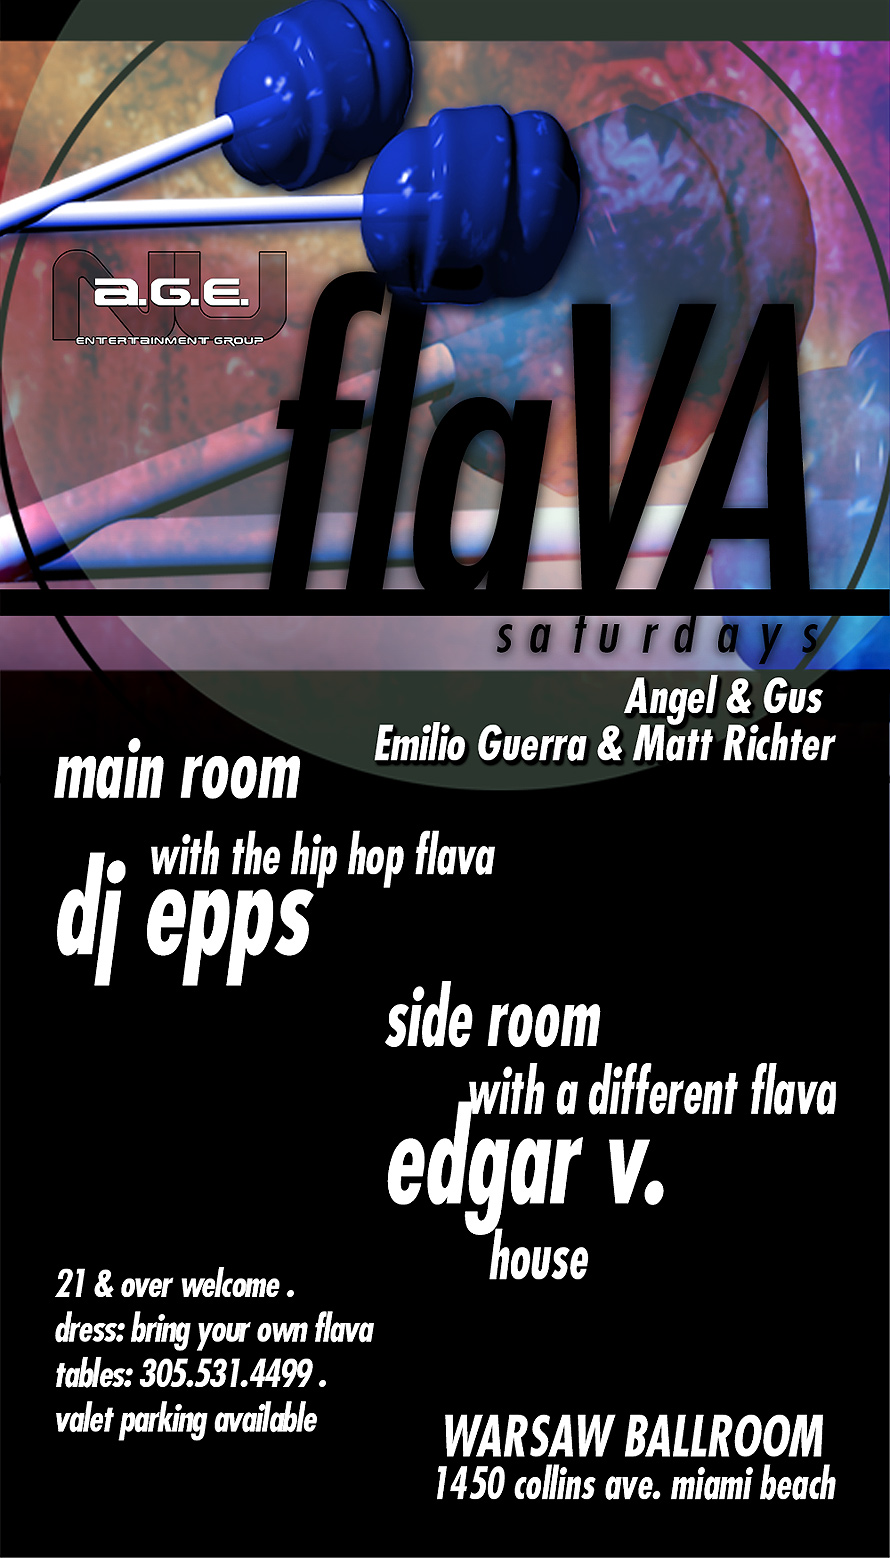 Flava Saturdays at Warsaw Ballroom